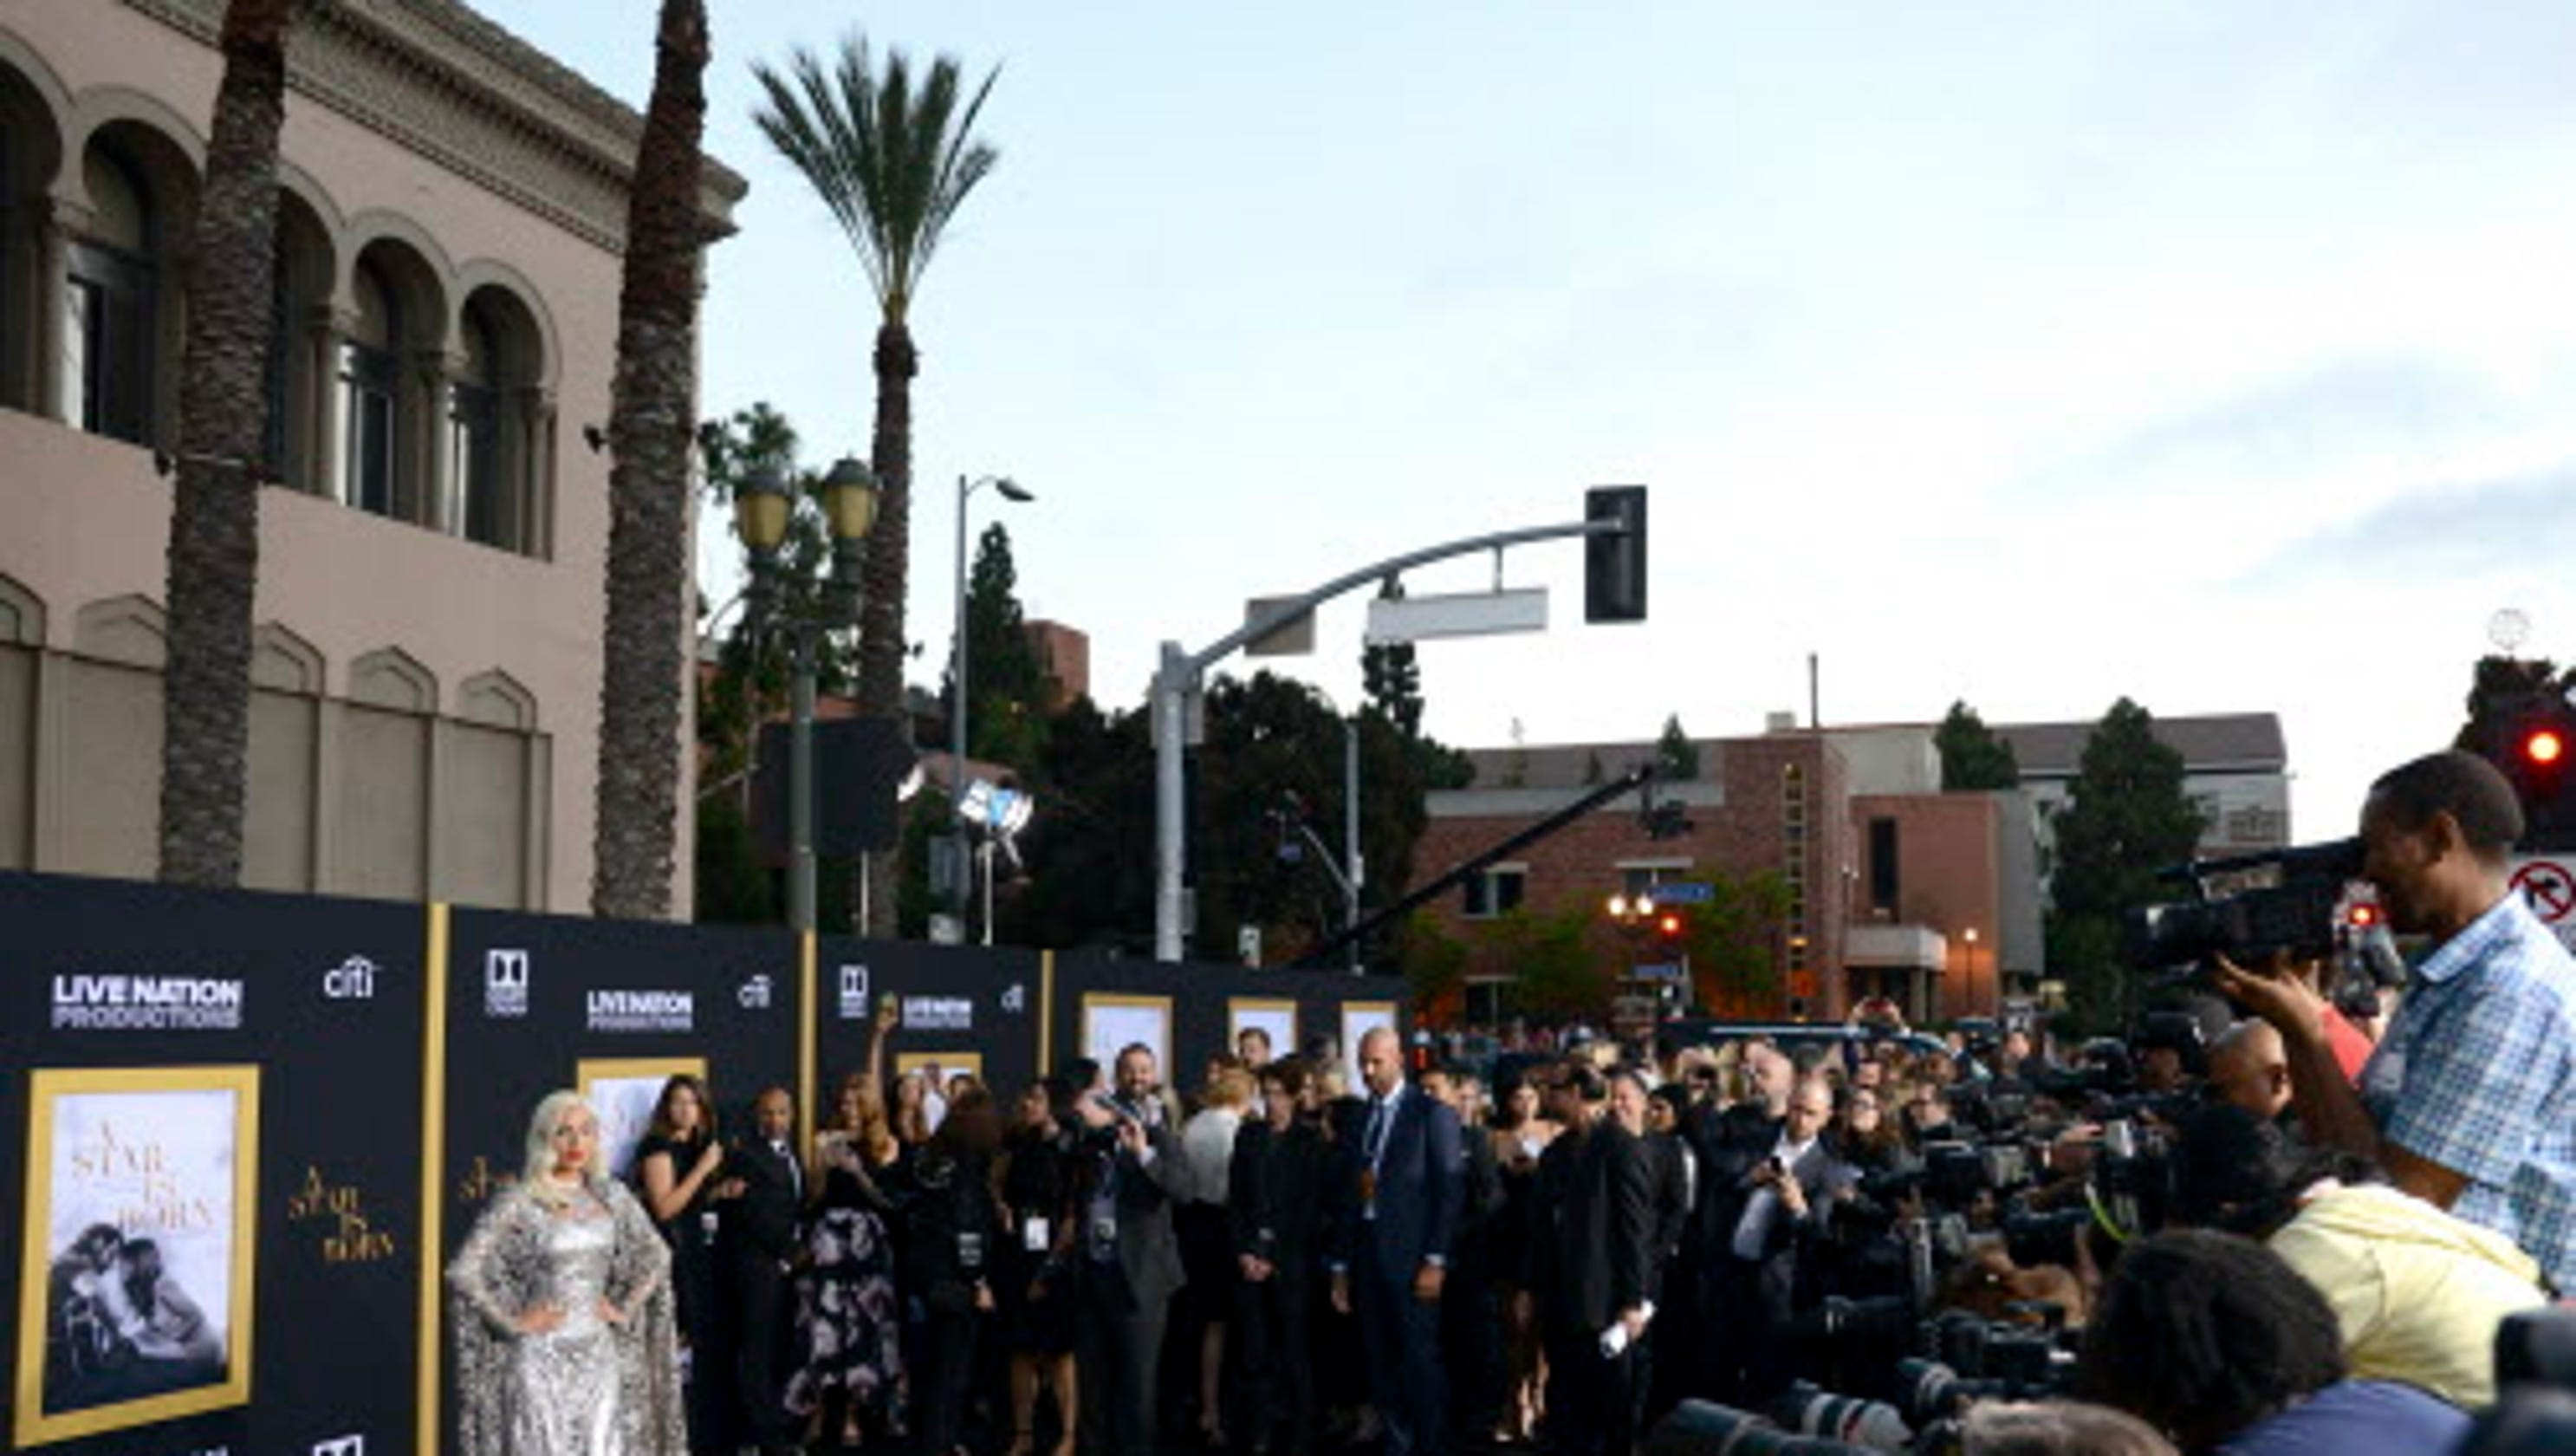 'A Star Is Born' premieres in LA: Who was there